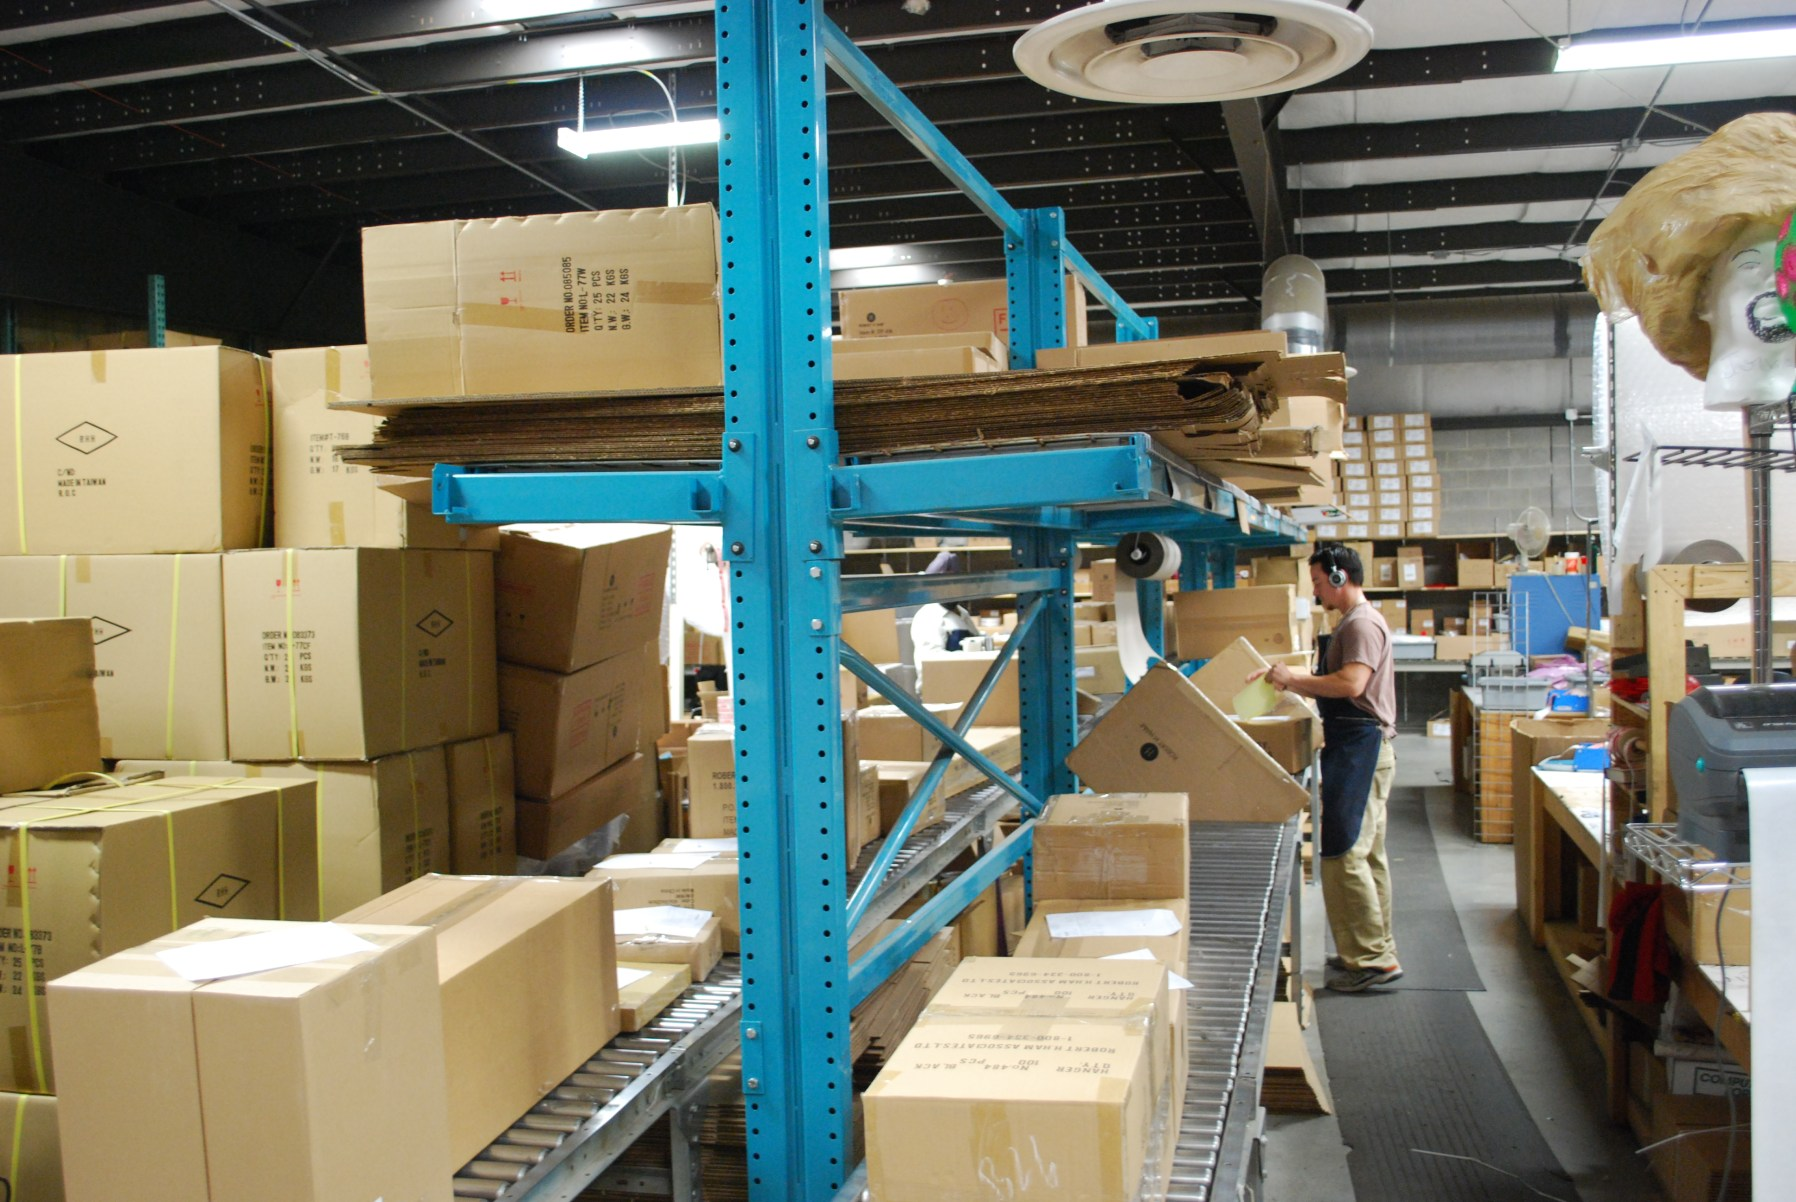 Cantilevered Shelves Over Conveyor